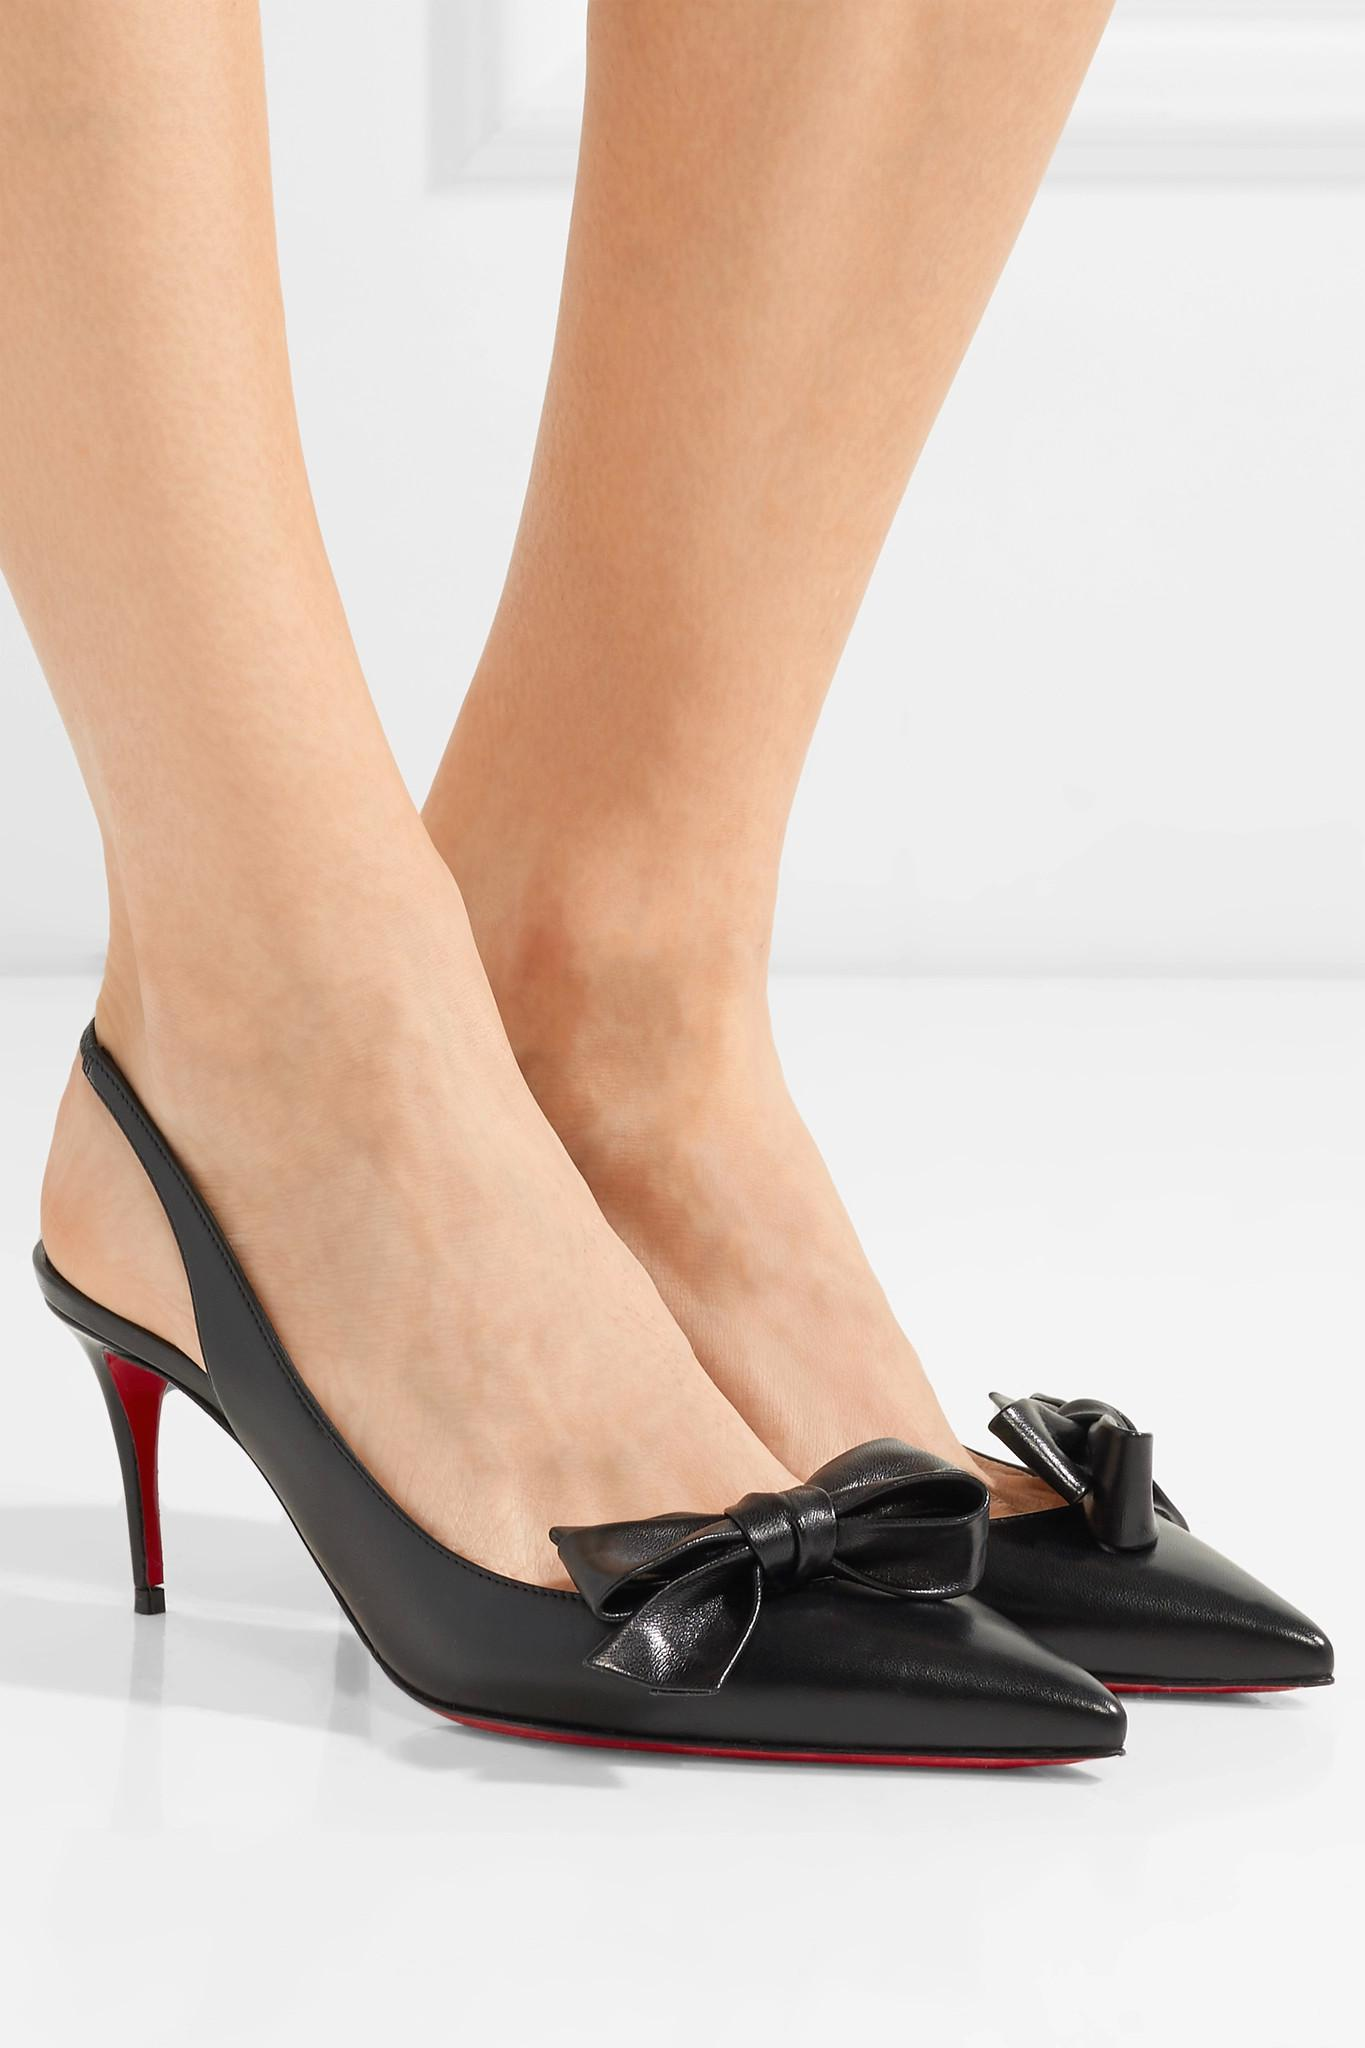 f853070d48b Christian Louboutin - Black Yasiling 70 Bow-embellished Leather Slingback  Pumps - Lyst. View fullscreen